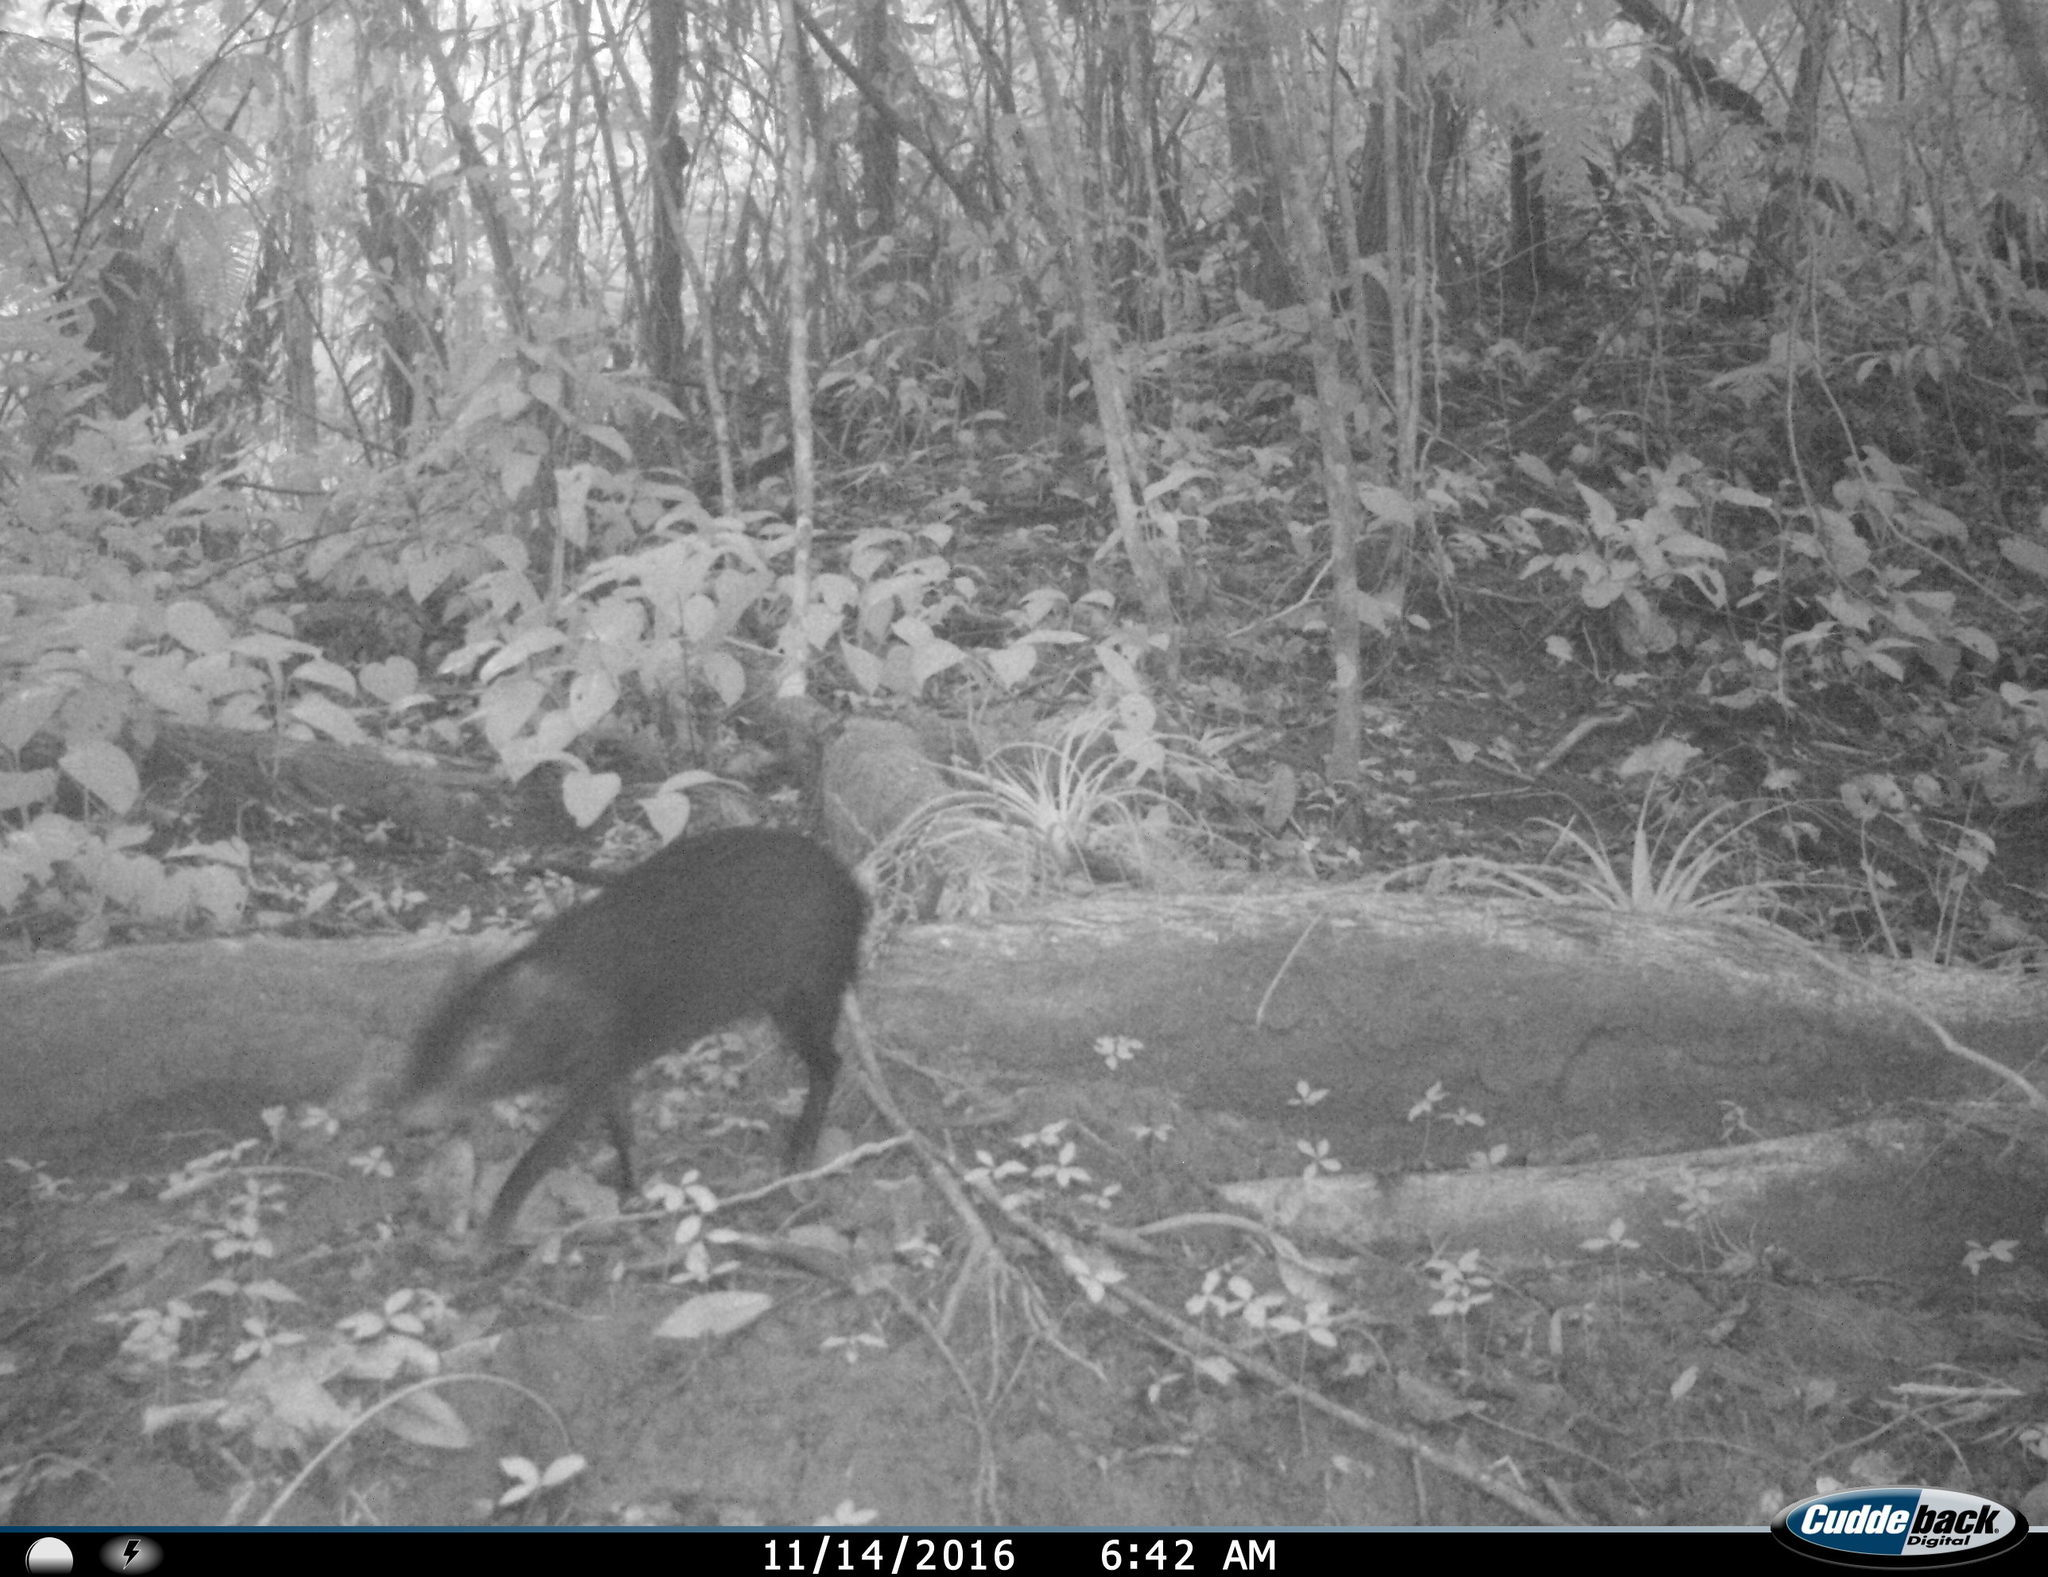 Image of Mexican Agouti